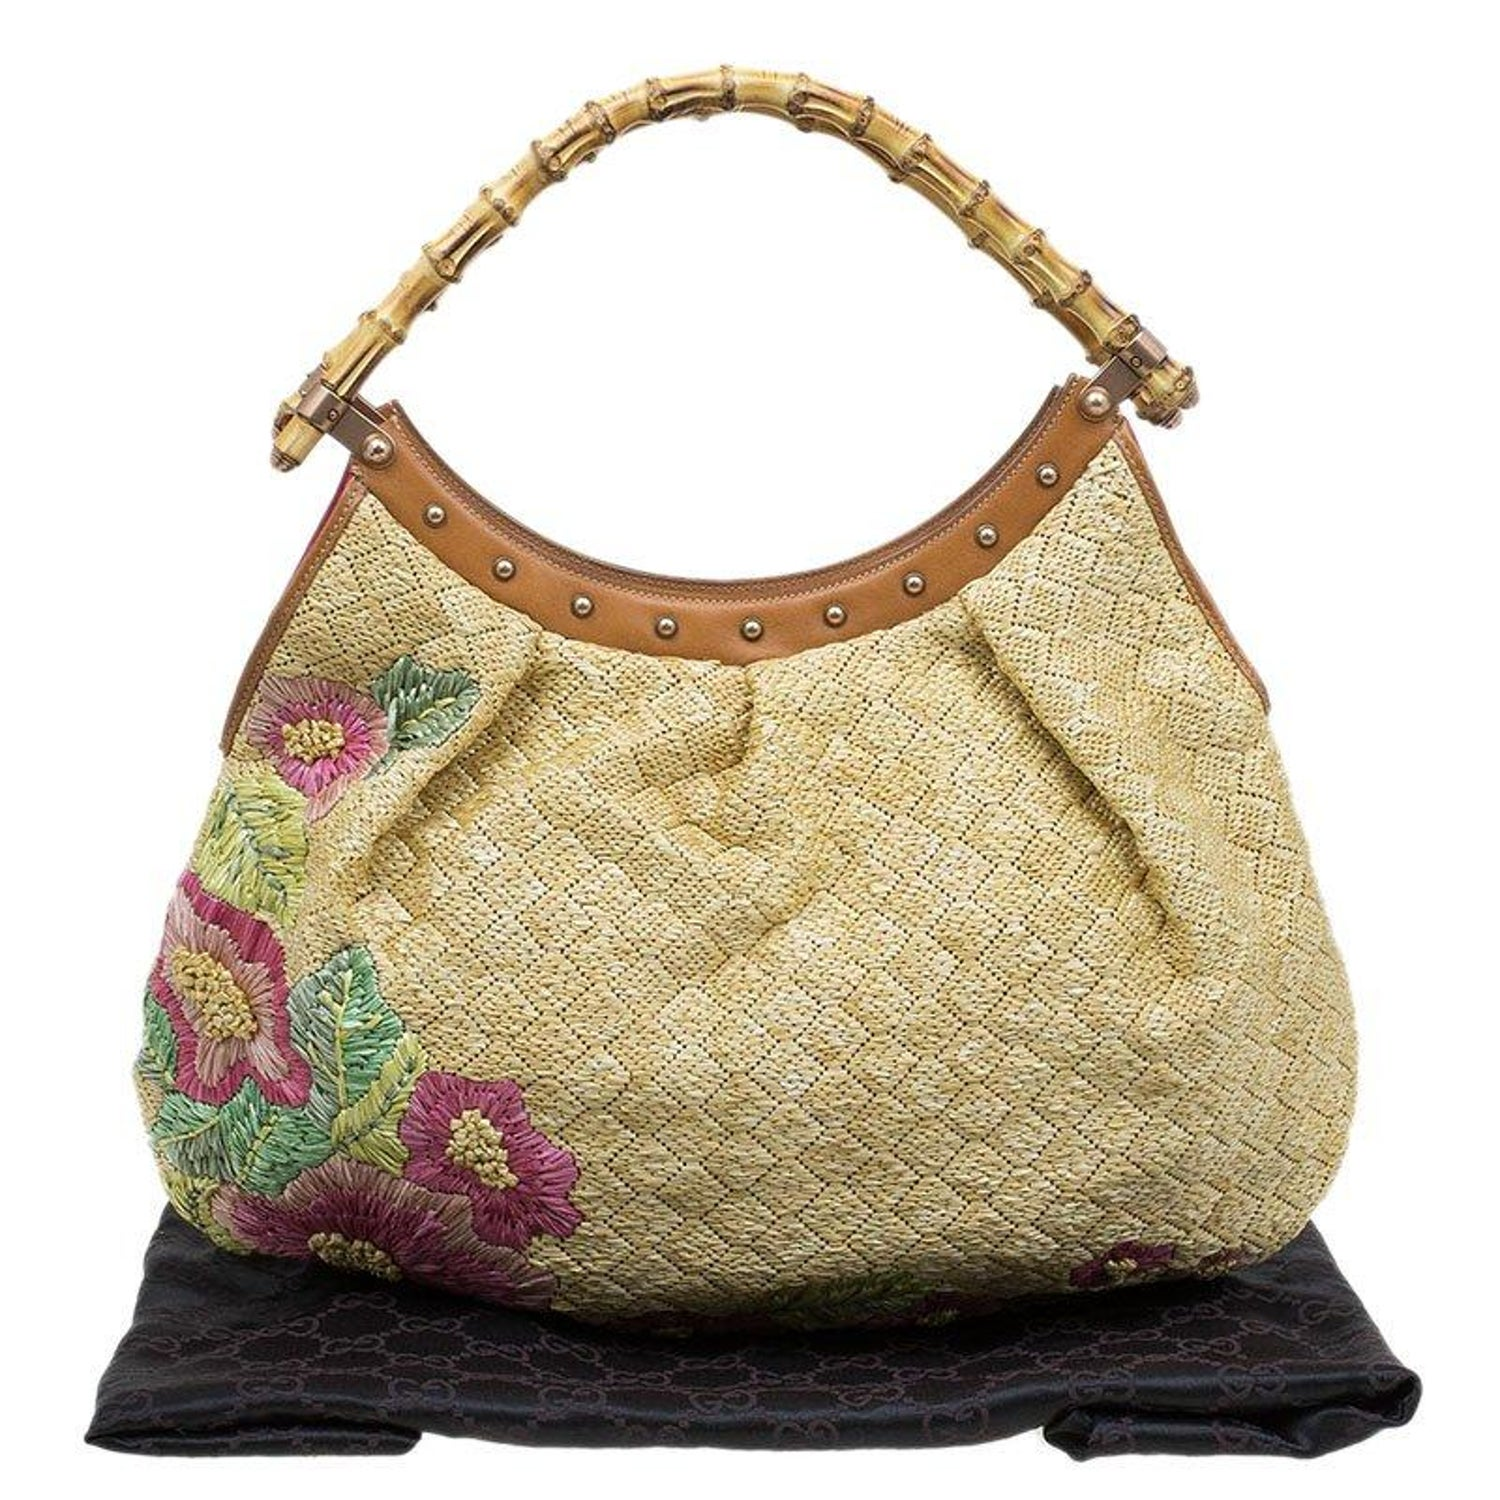 2a842aec9ad Gucci Beige Raffia Floral Print Bamboo Hobo For Sale at 1stdibs